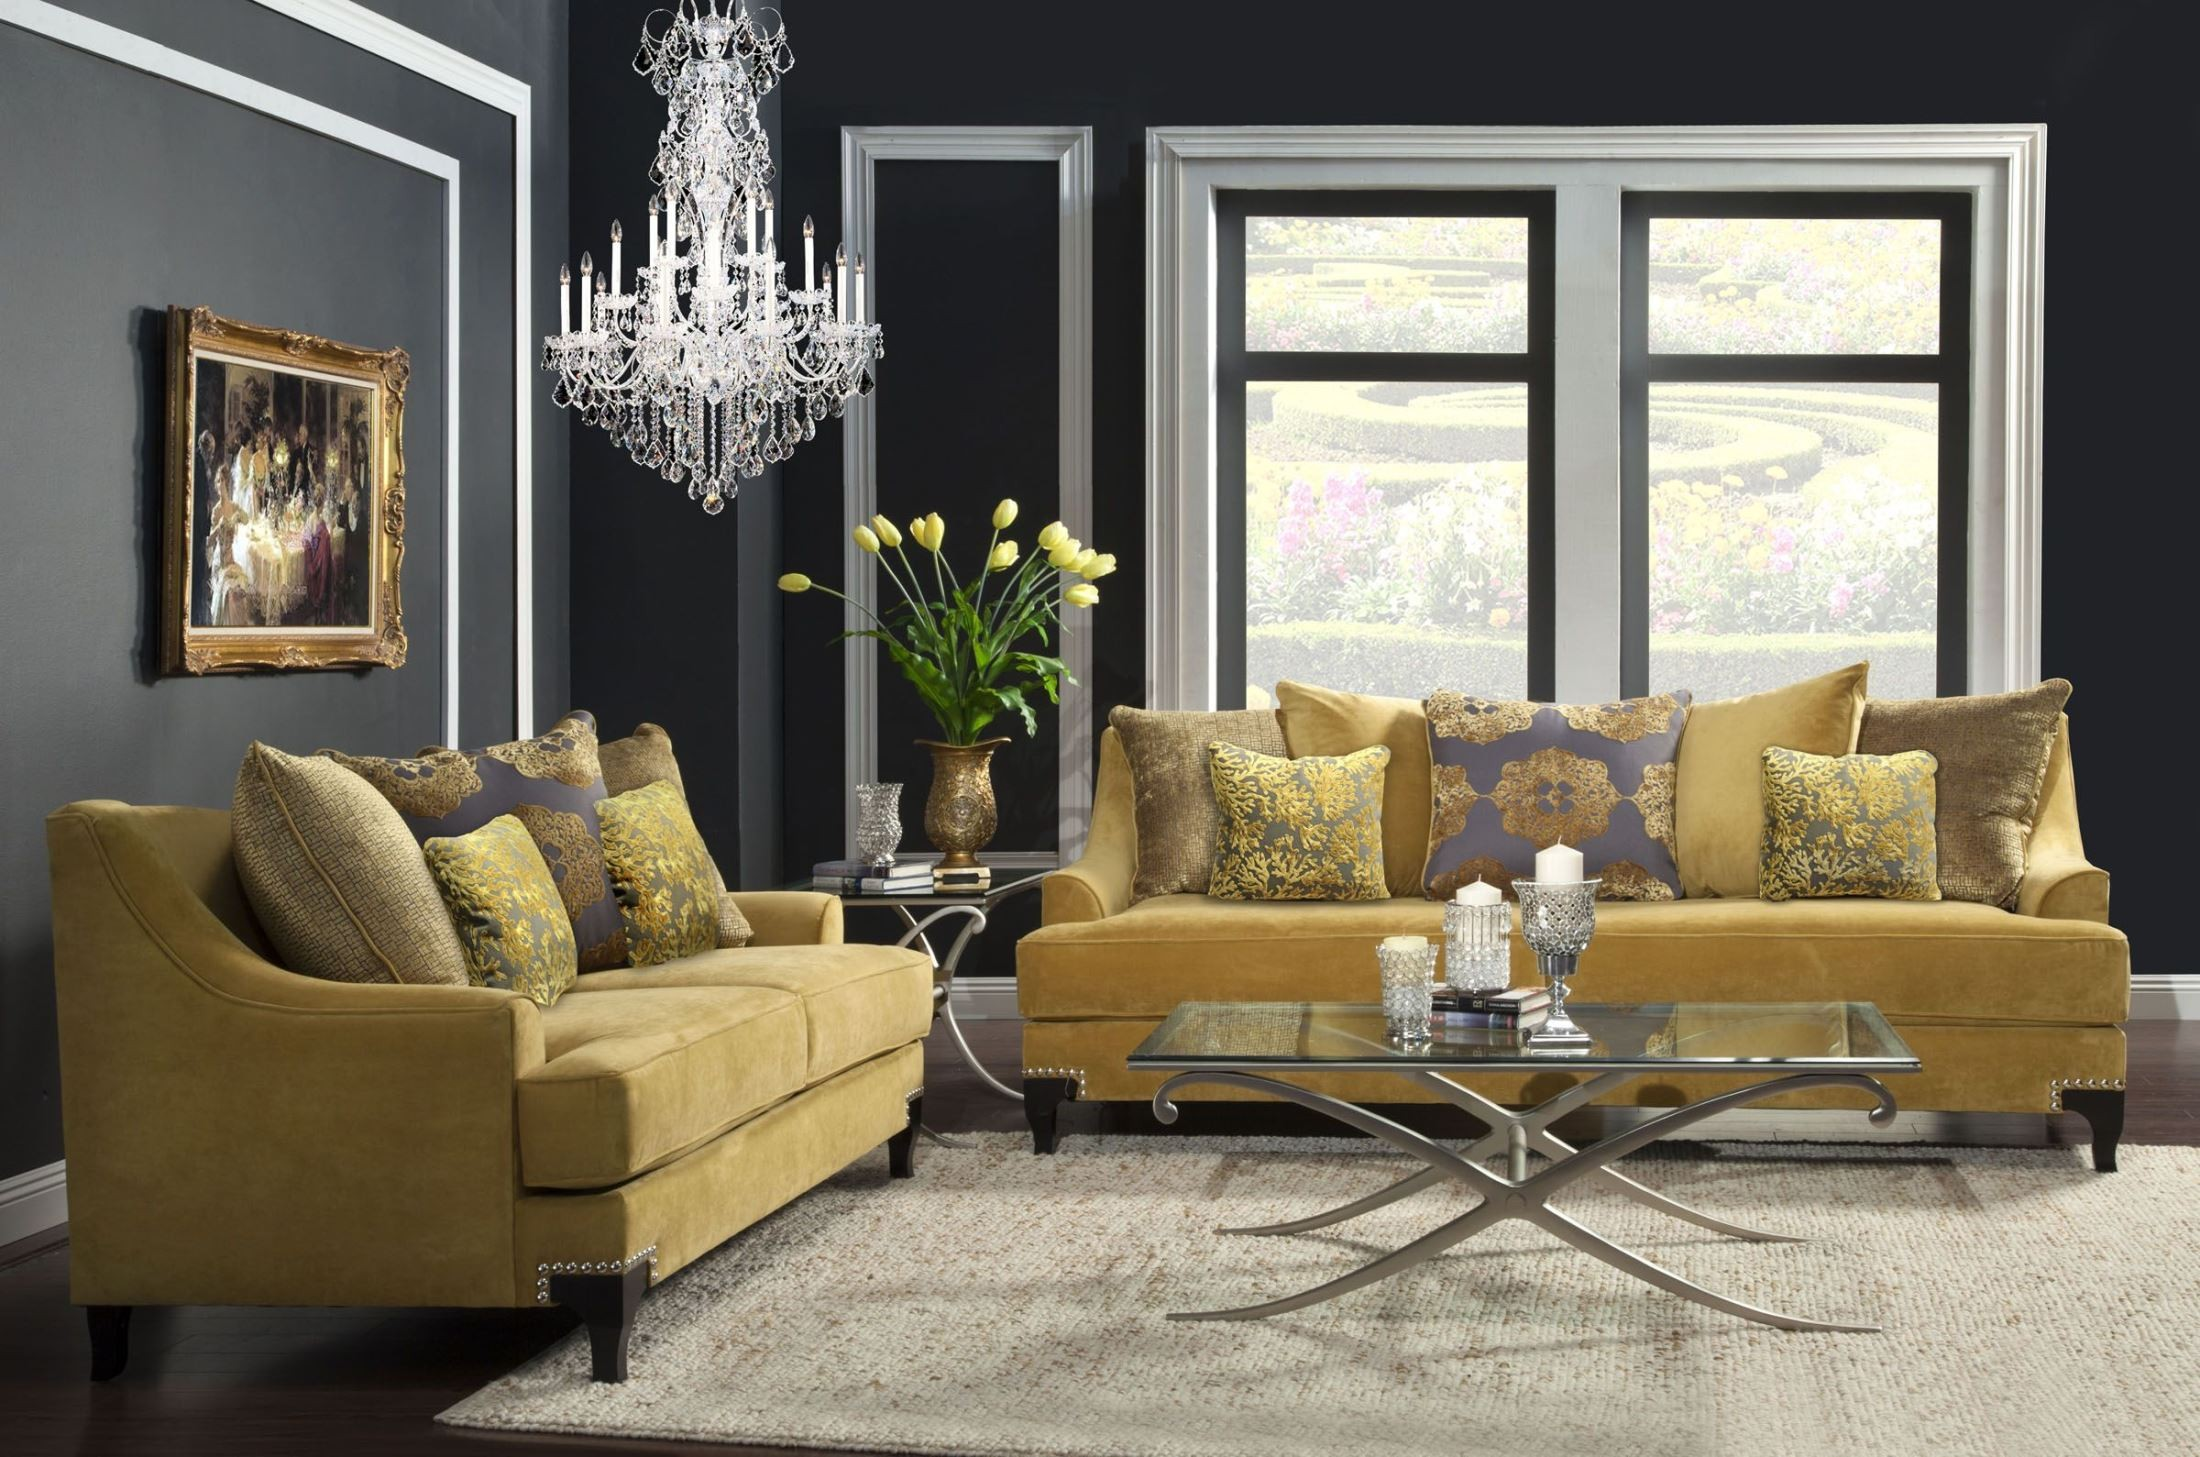 Viscontti Gold Living Room Set From Furniture Of America. Colorful Chairs For Living Room. Living Room Seating. Best Window Treatments For Living Room. Country Style Living Room Curtains. Crown Molding For Living Room. Living Room Sets Ikea. Fluffy Rugs For Living Room. 3 Piece Living Room Furniture Set